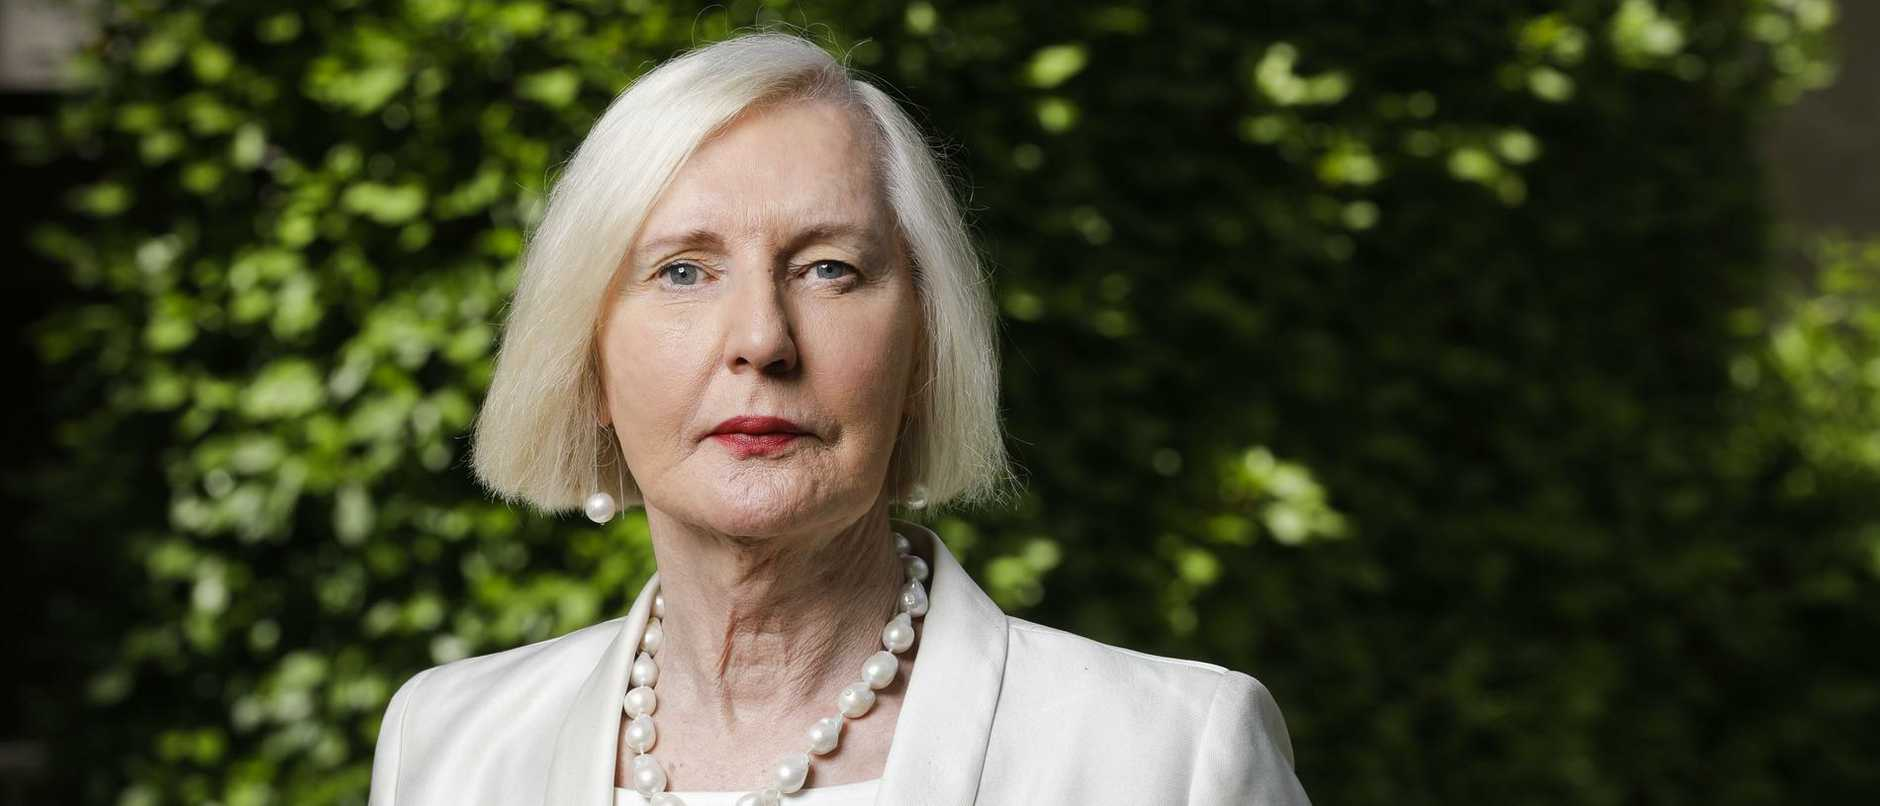 Catherine McGregor Joins Sky News